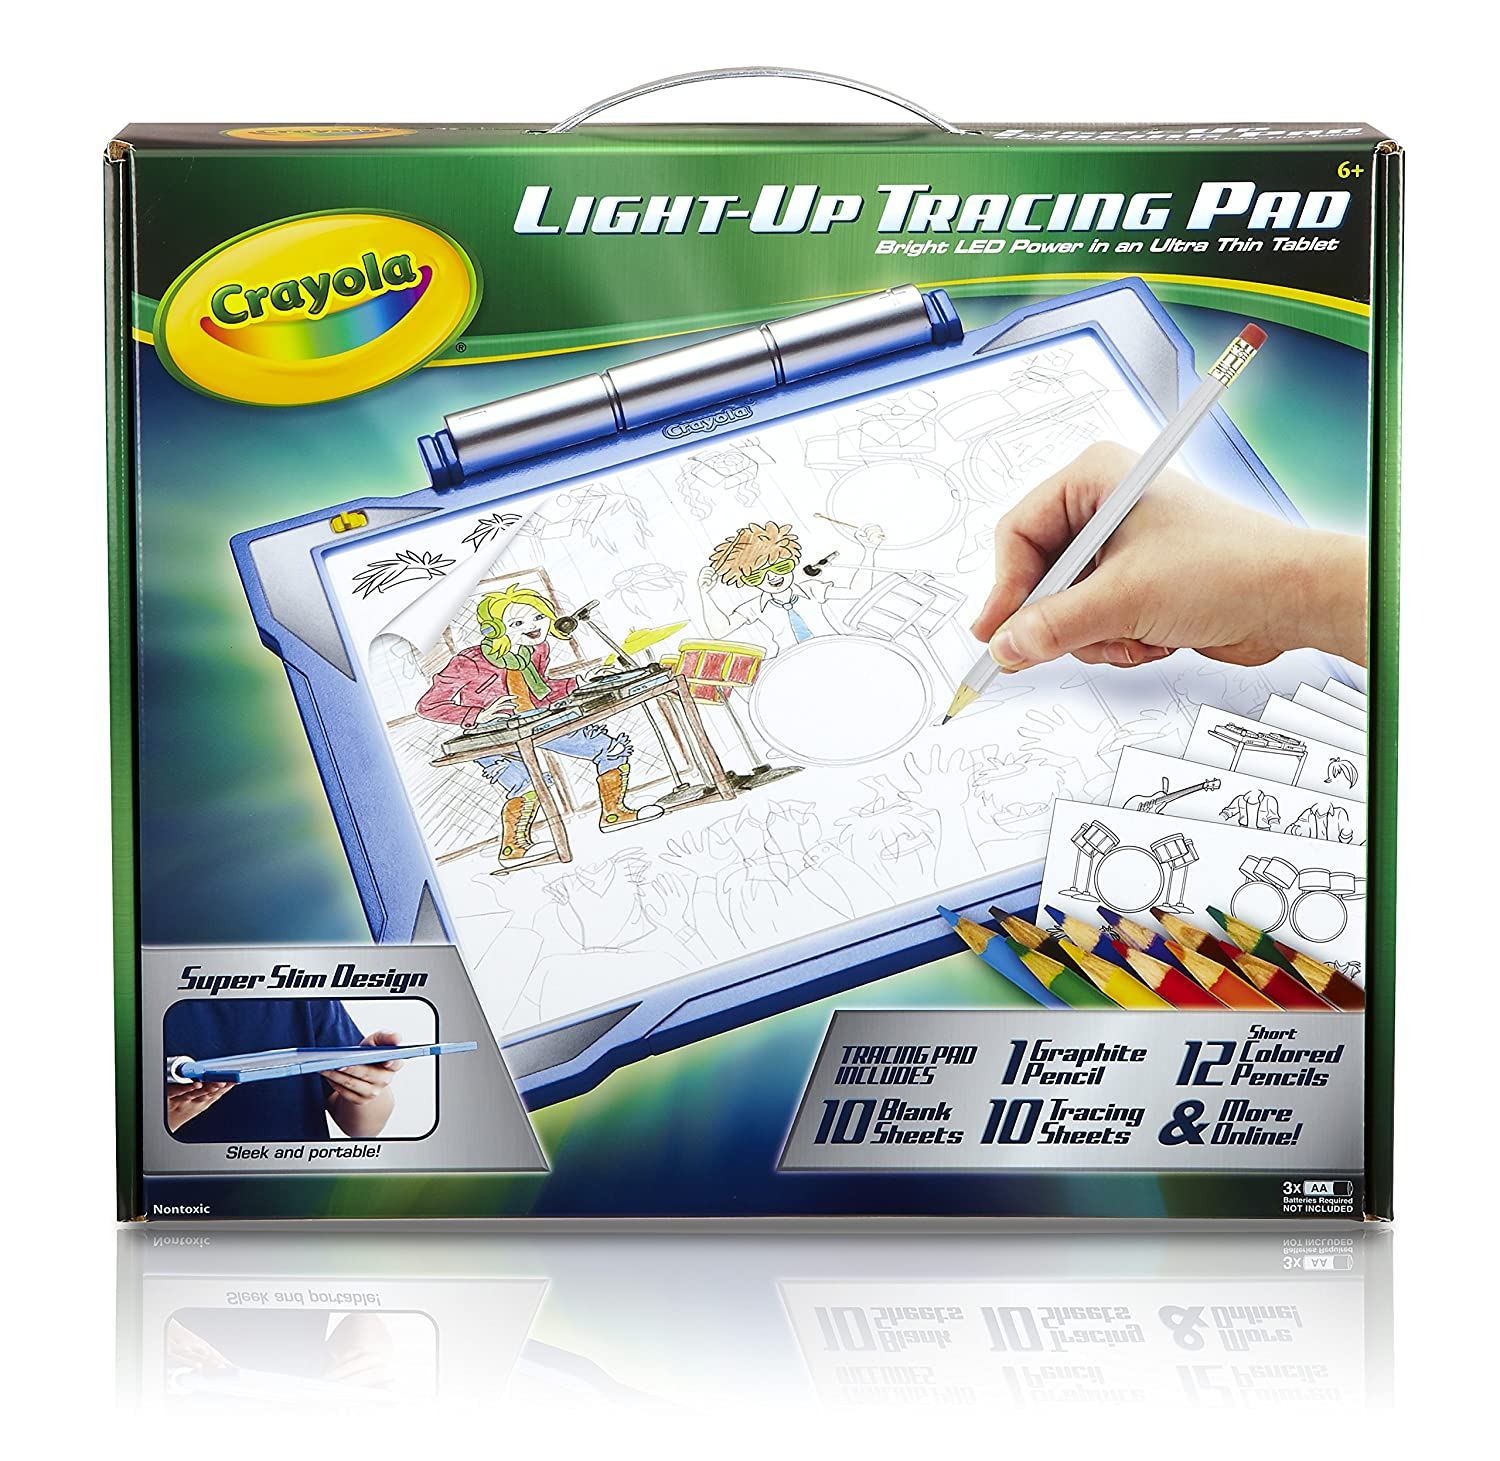 LED Tracing and Coloring Board